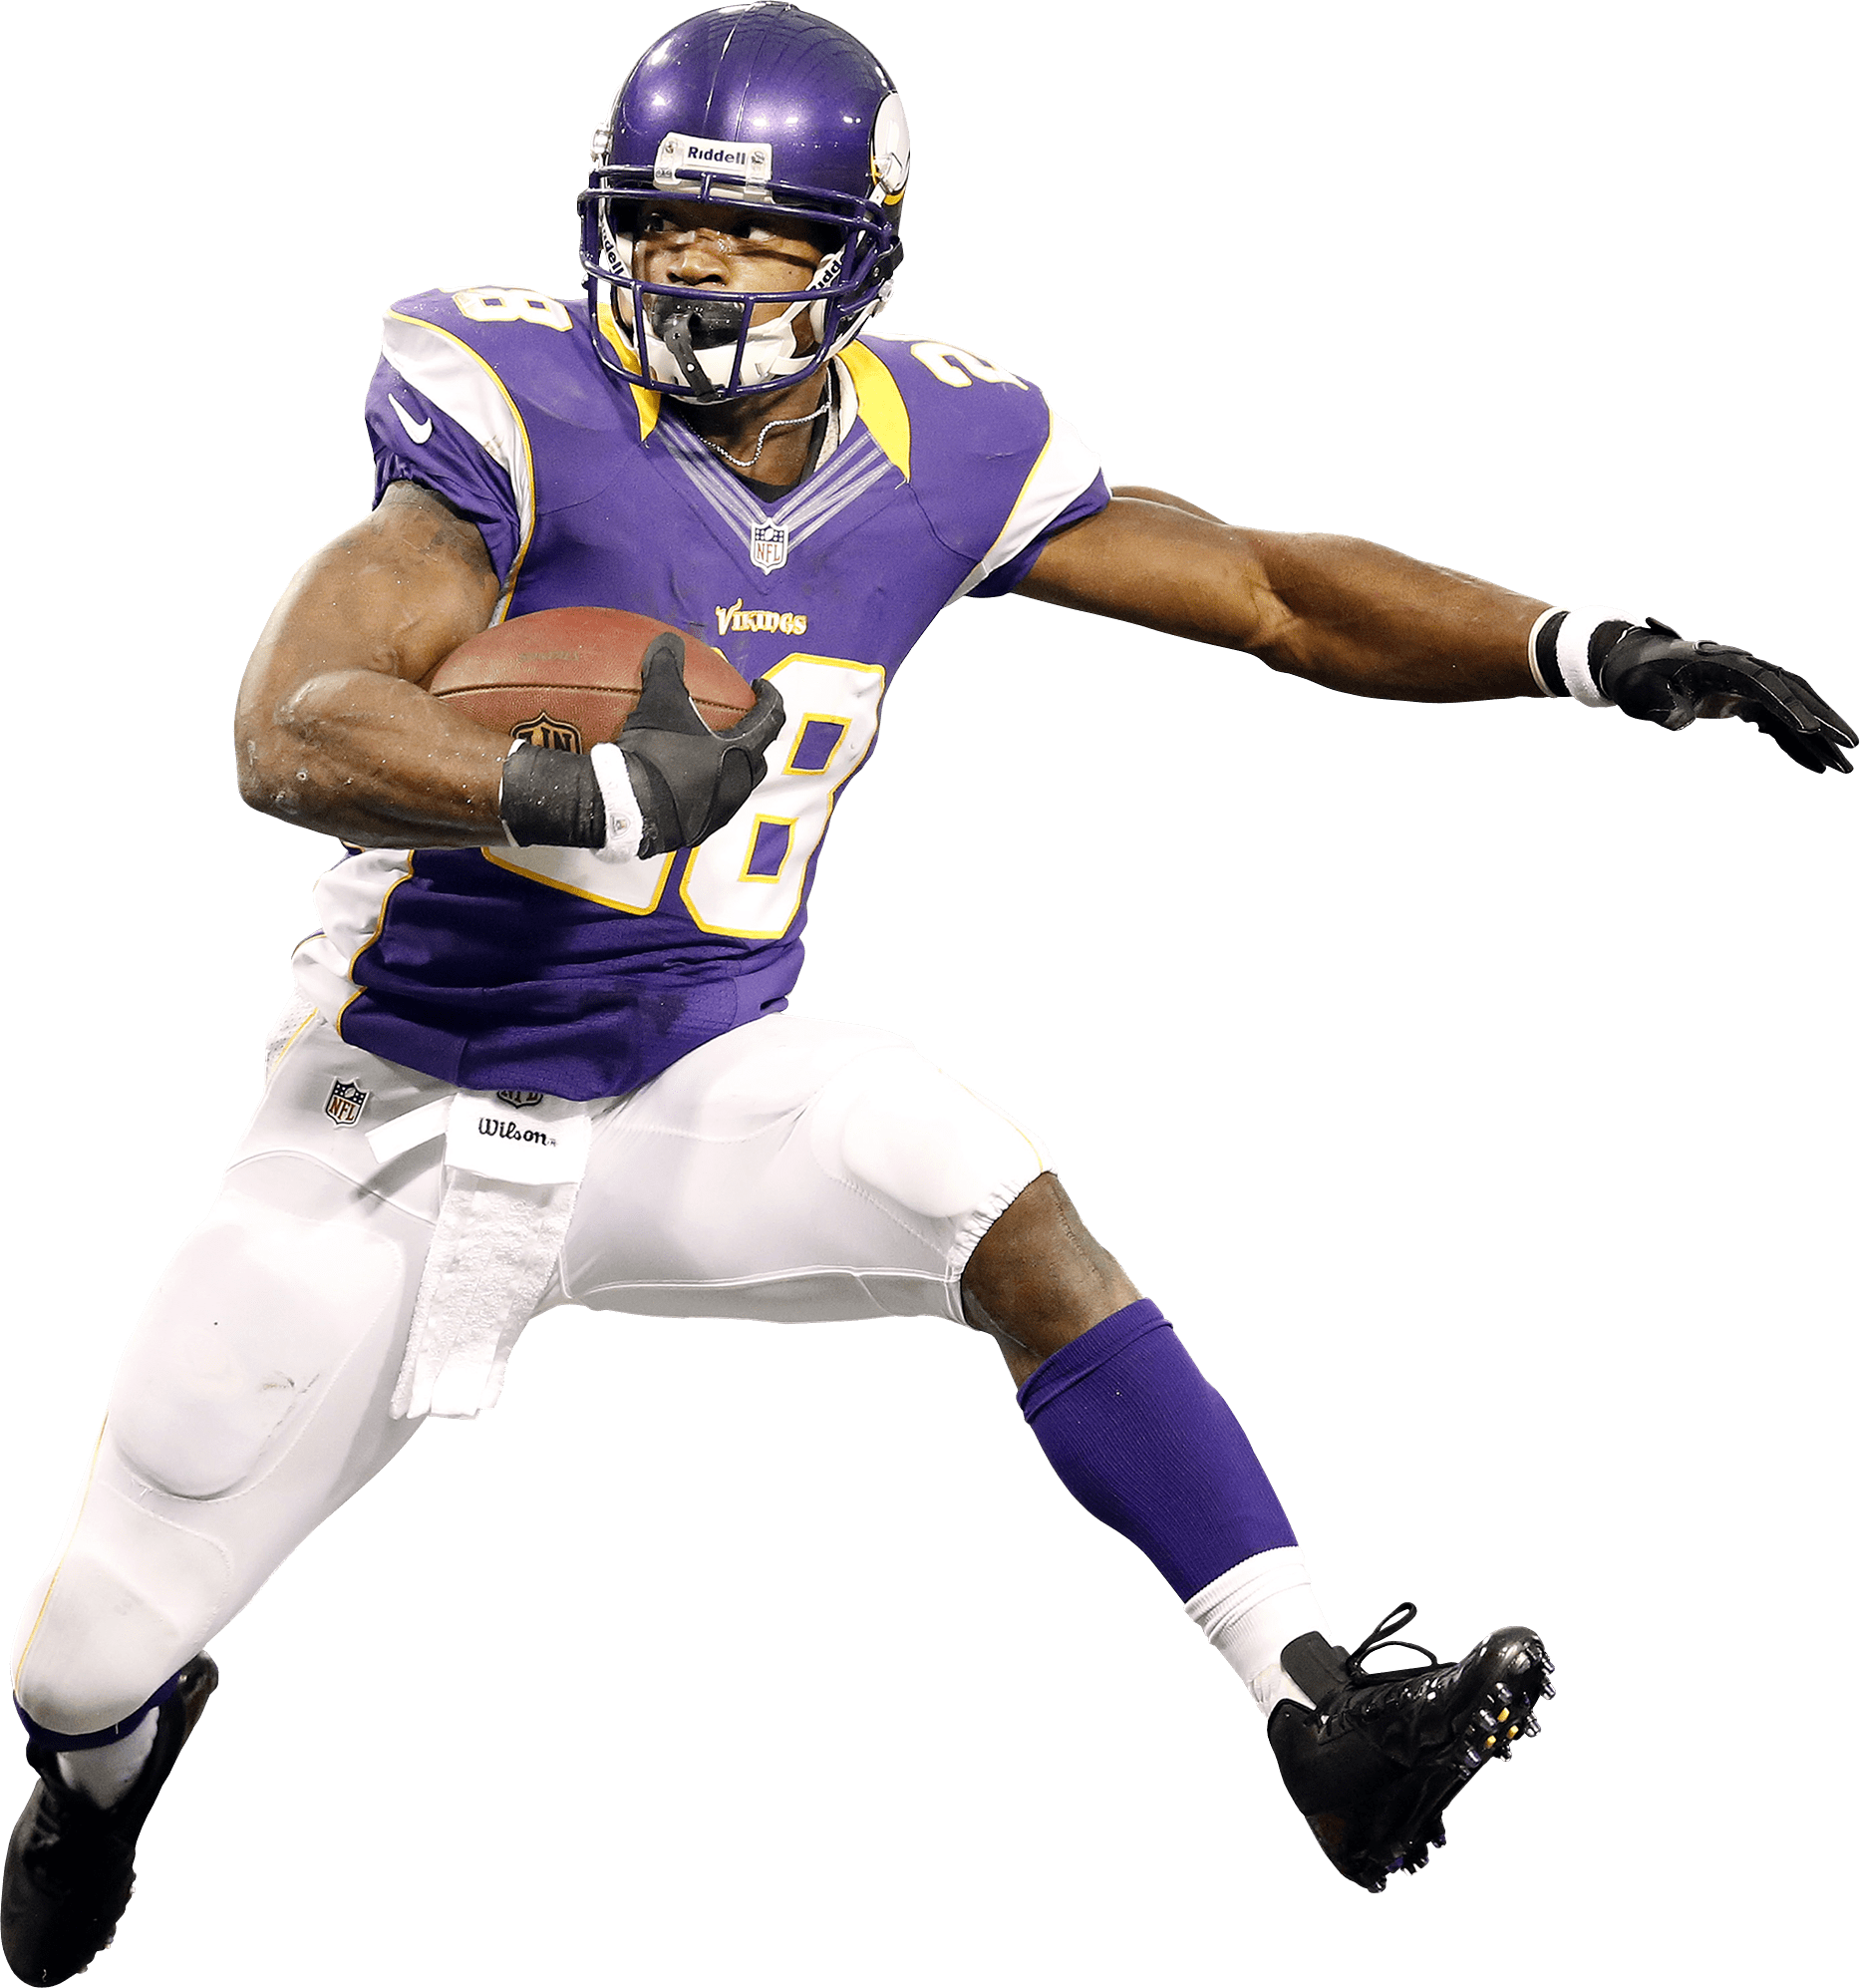 Running football player clipart graphic freeuse Adrian Peterson Running transparent PNG - StickPNG graphic freeuse